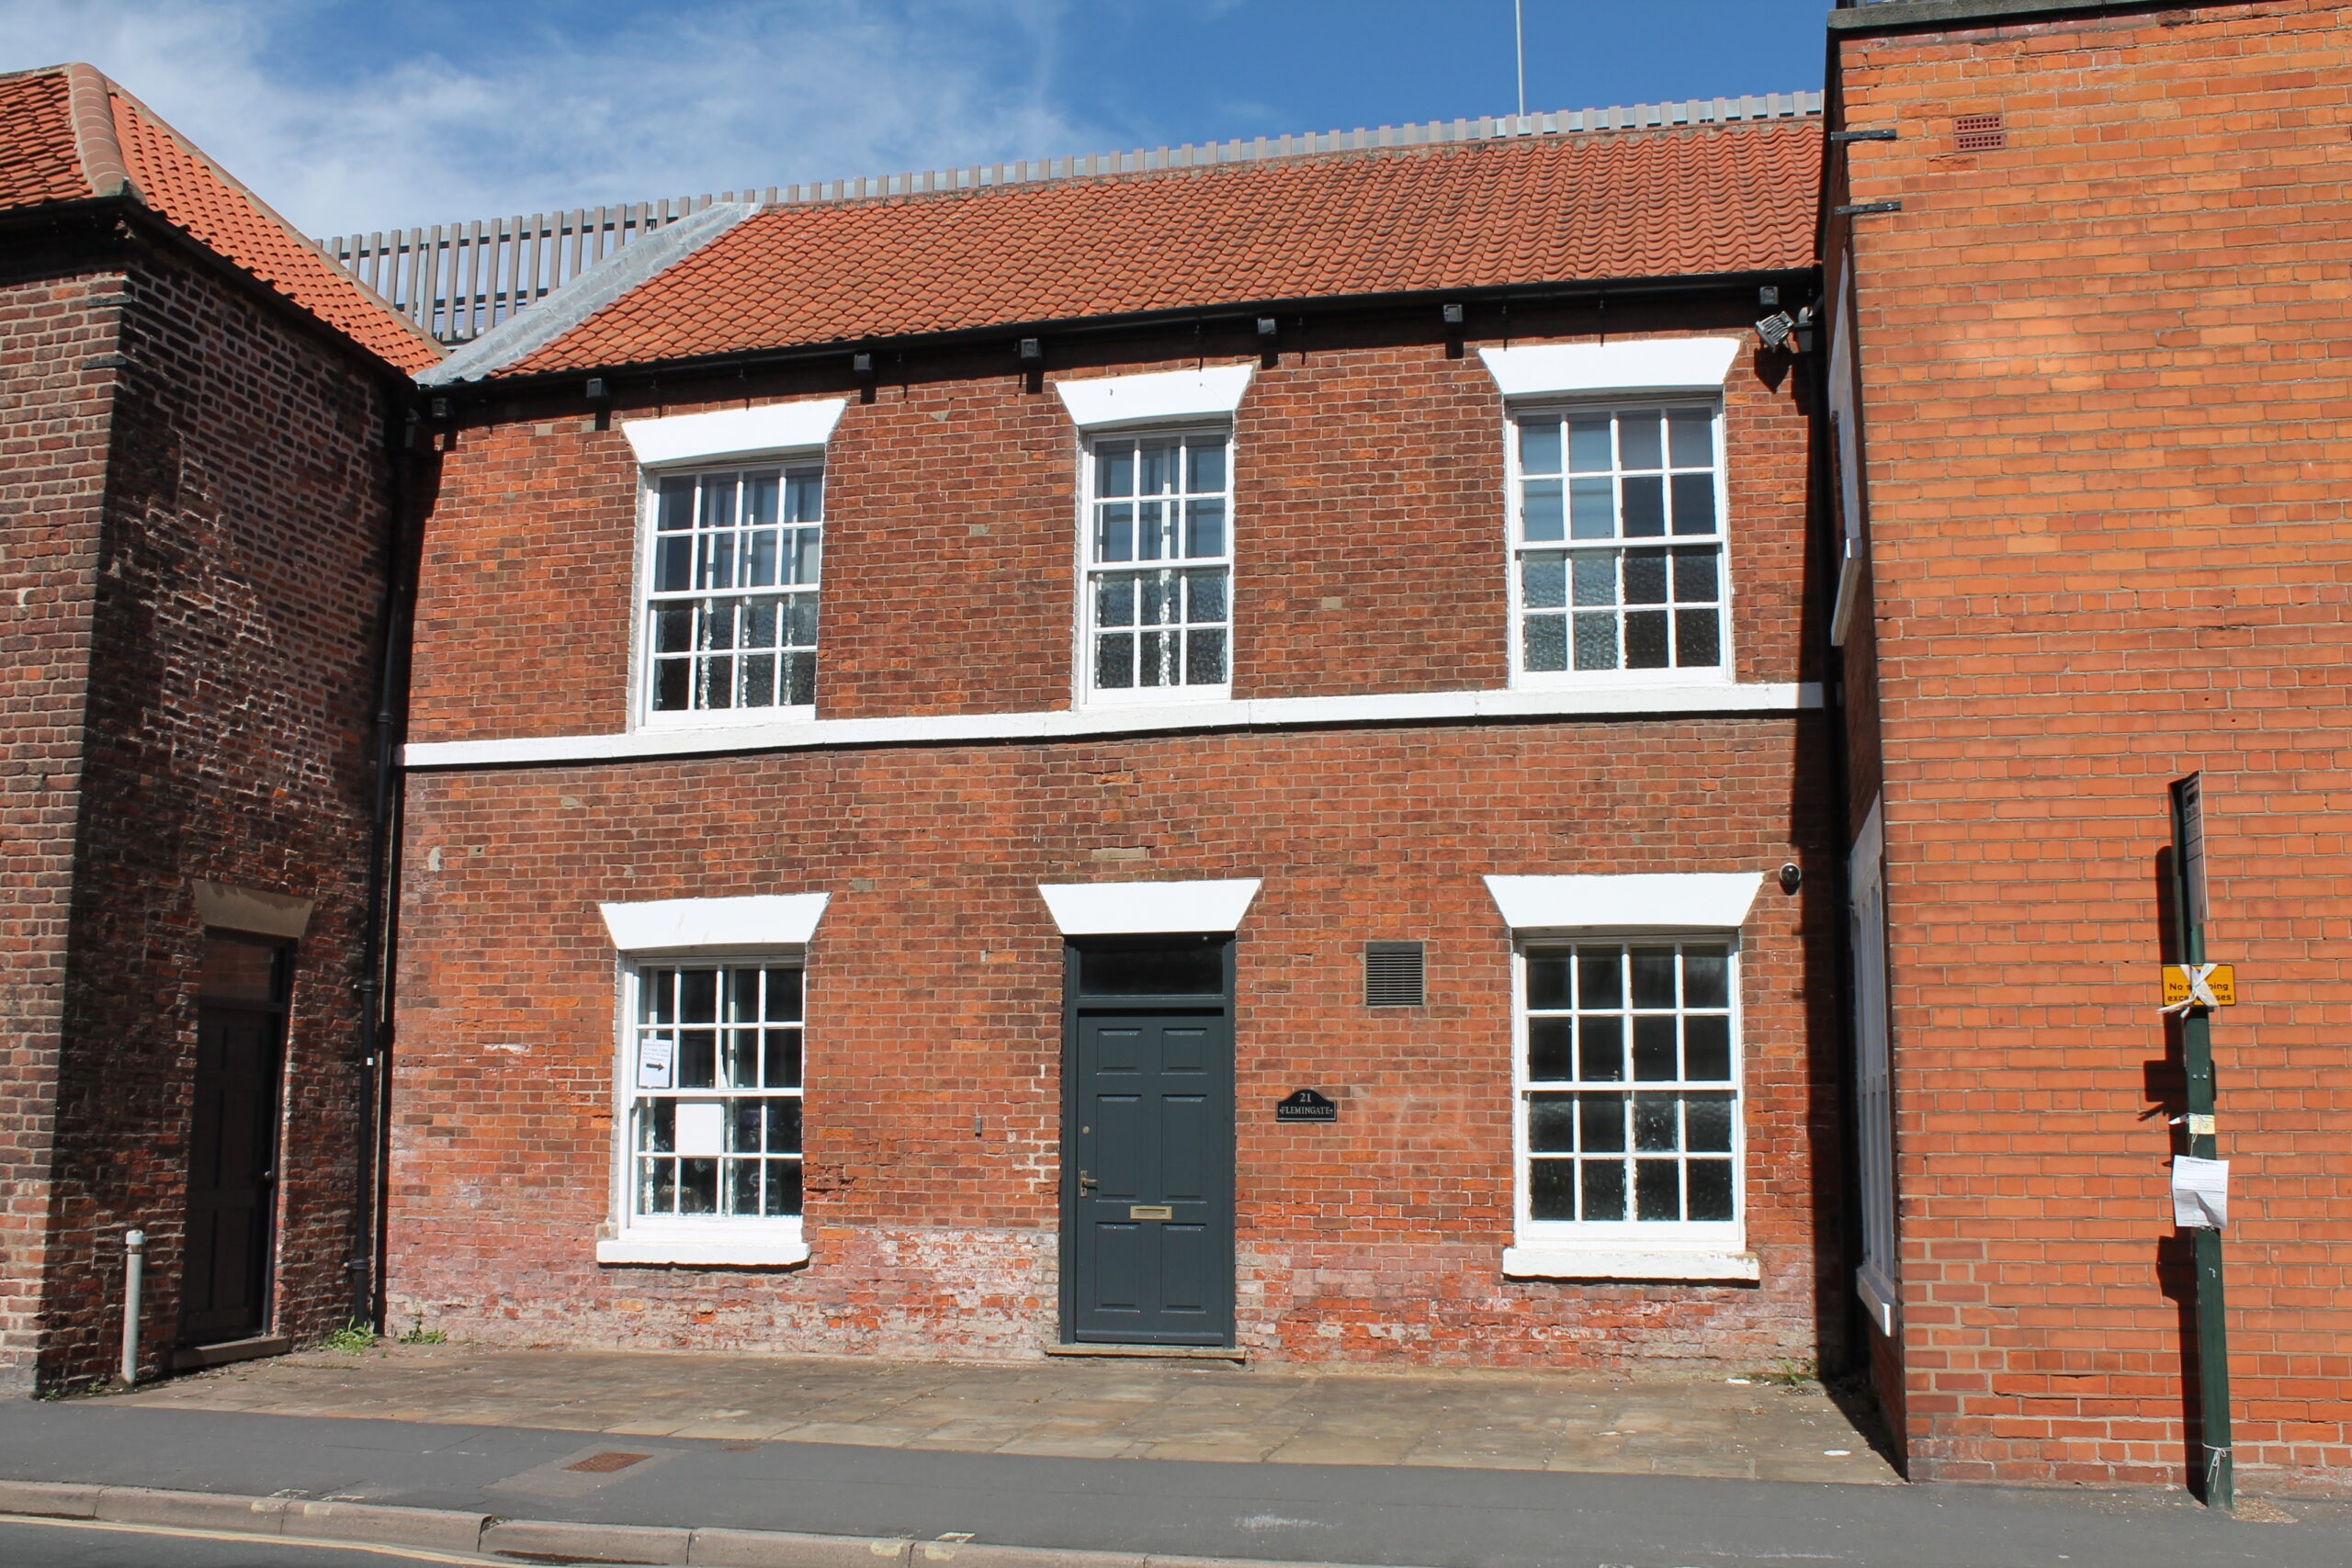 The outside of a brick building with georgian style windows, Linkage College's new campus